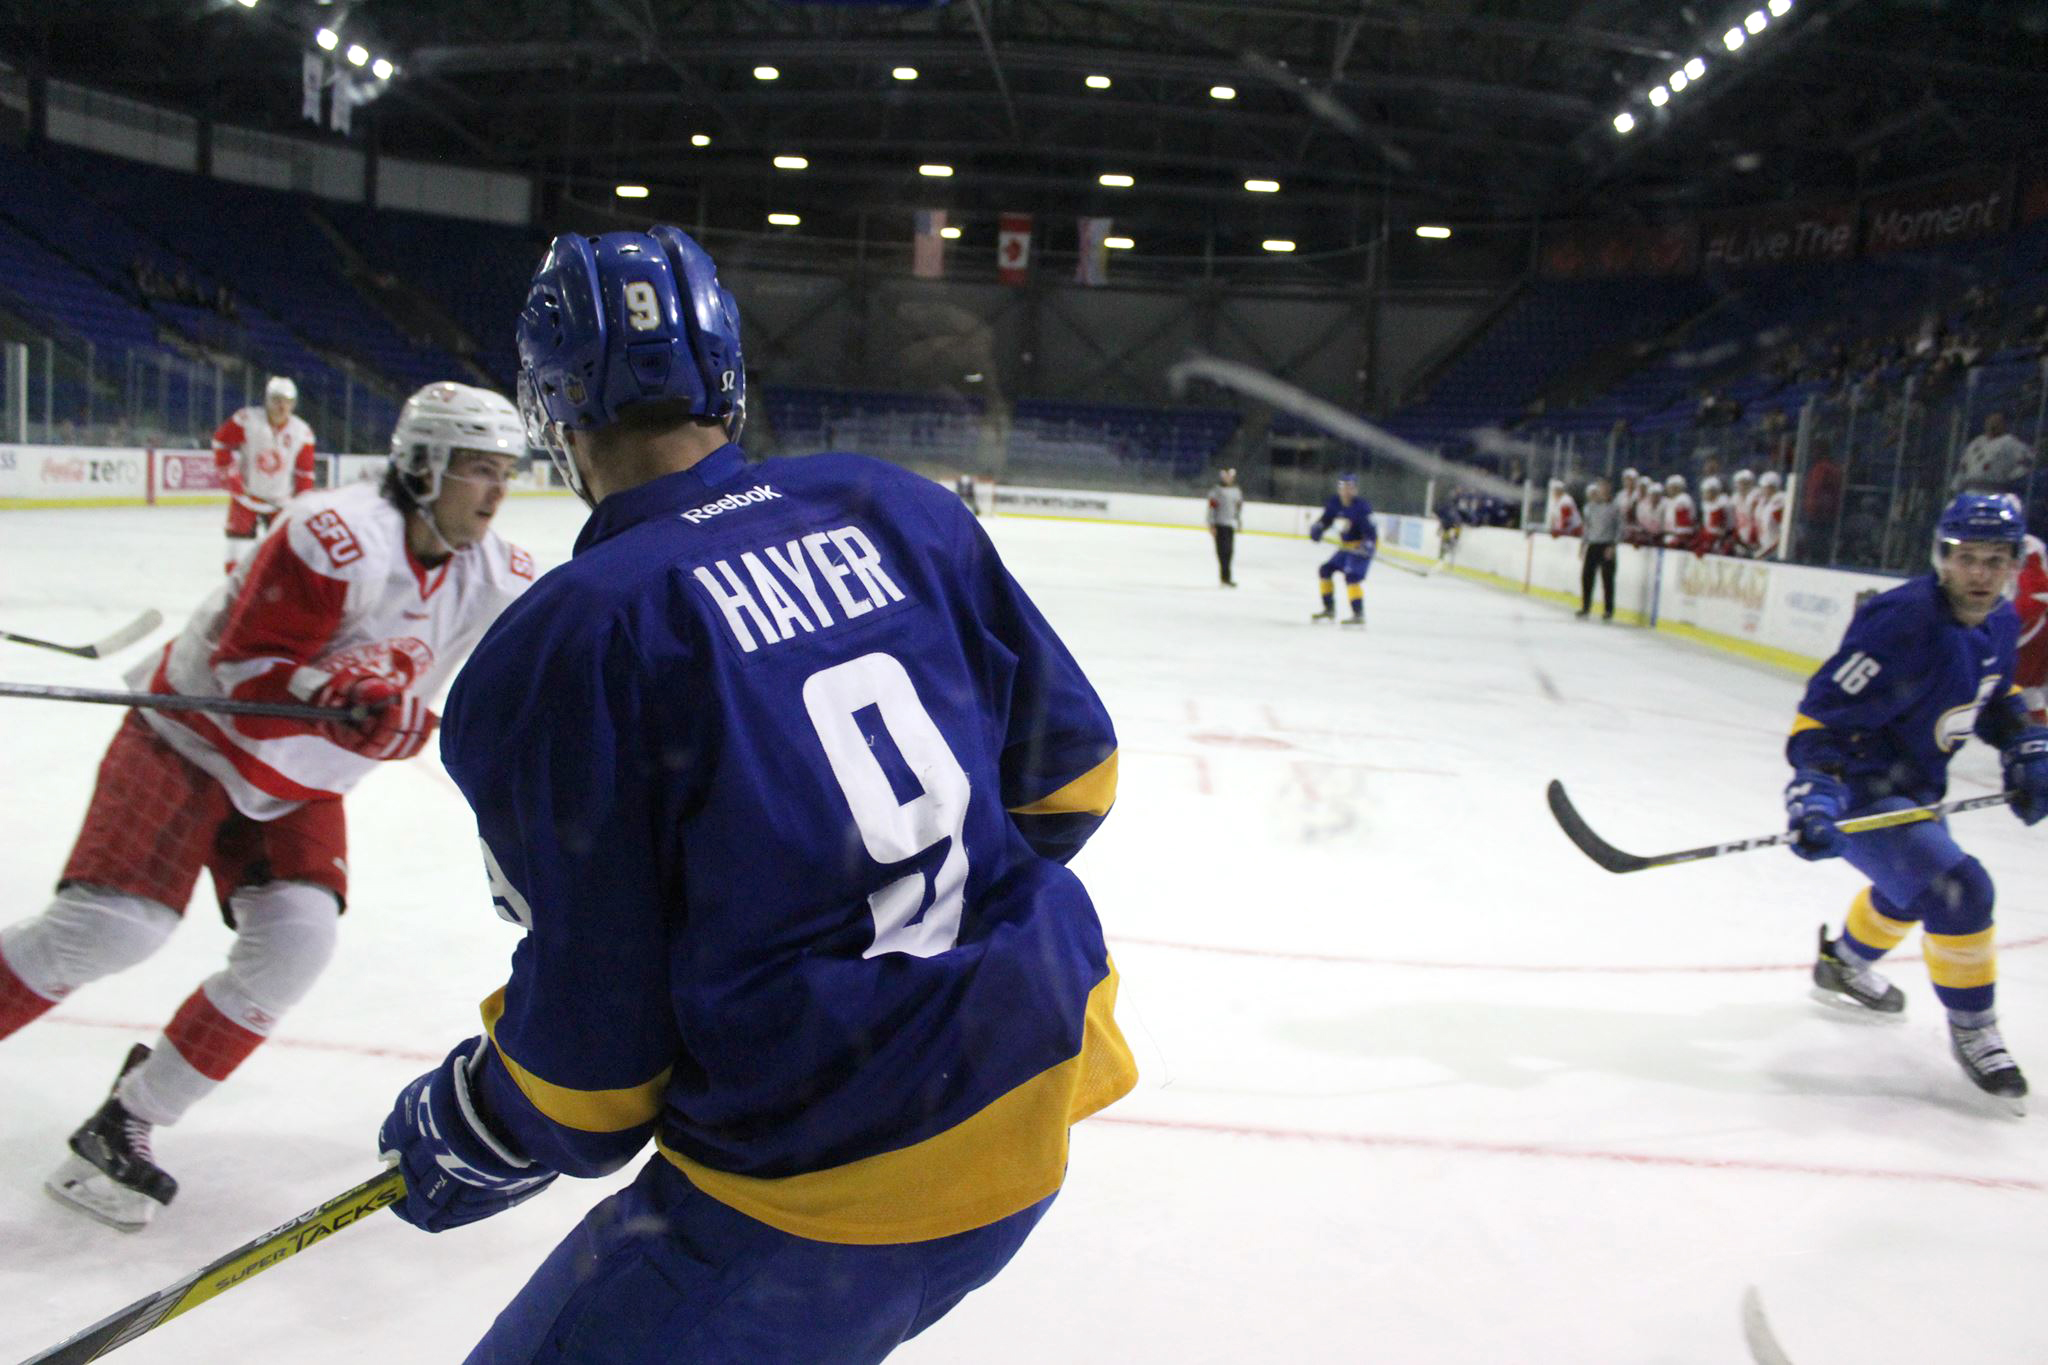 Hayer, now in his fourth year of eligibility with the T-Birds, scored twice in the game.